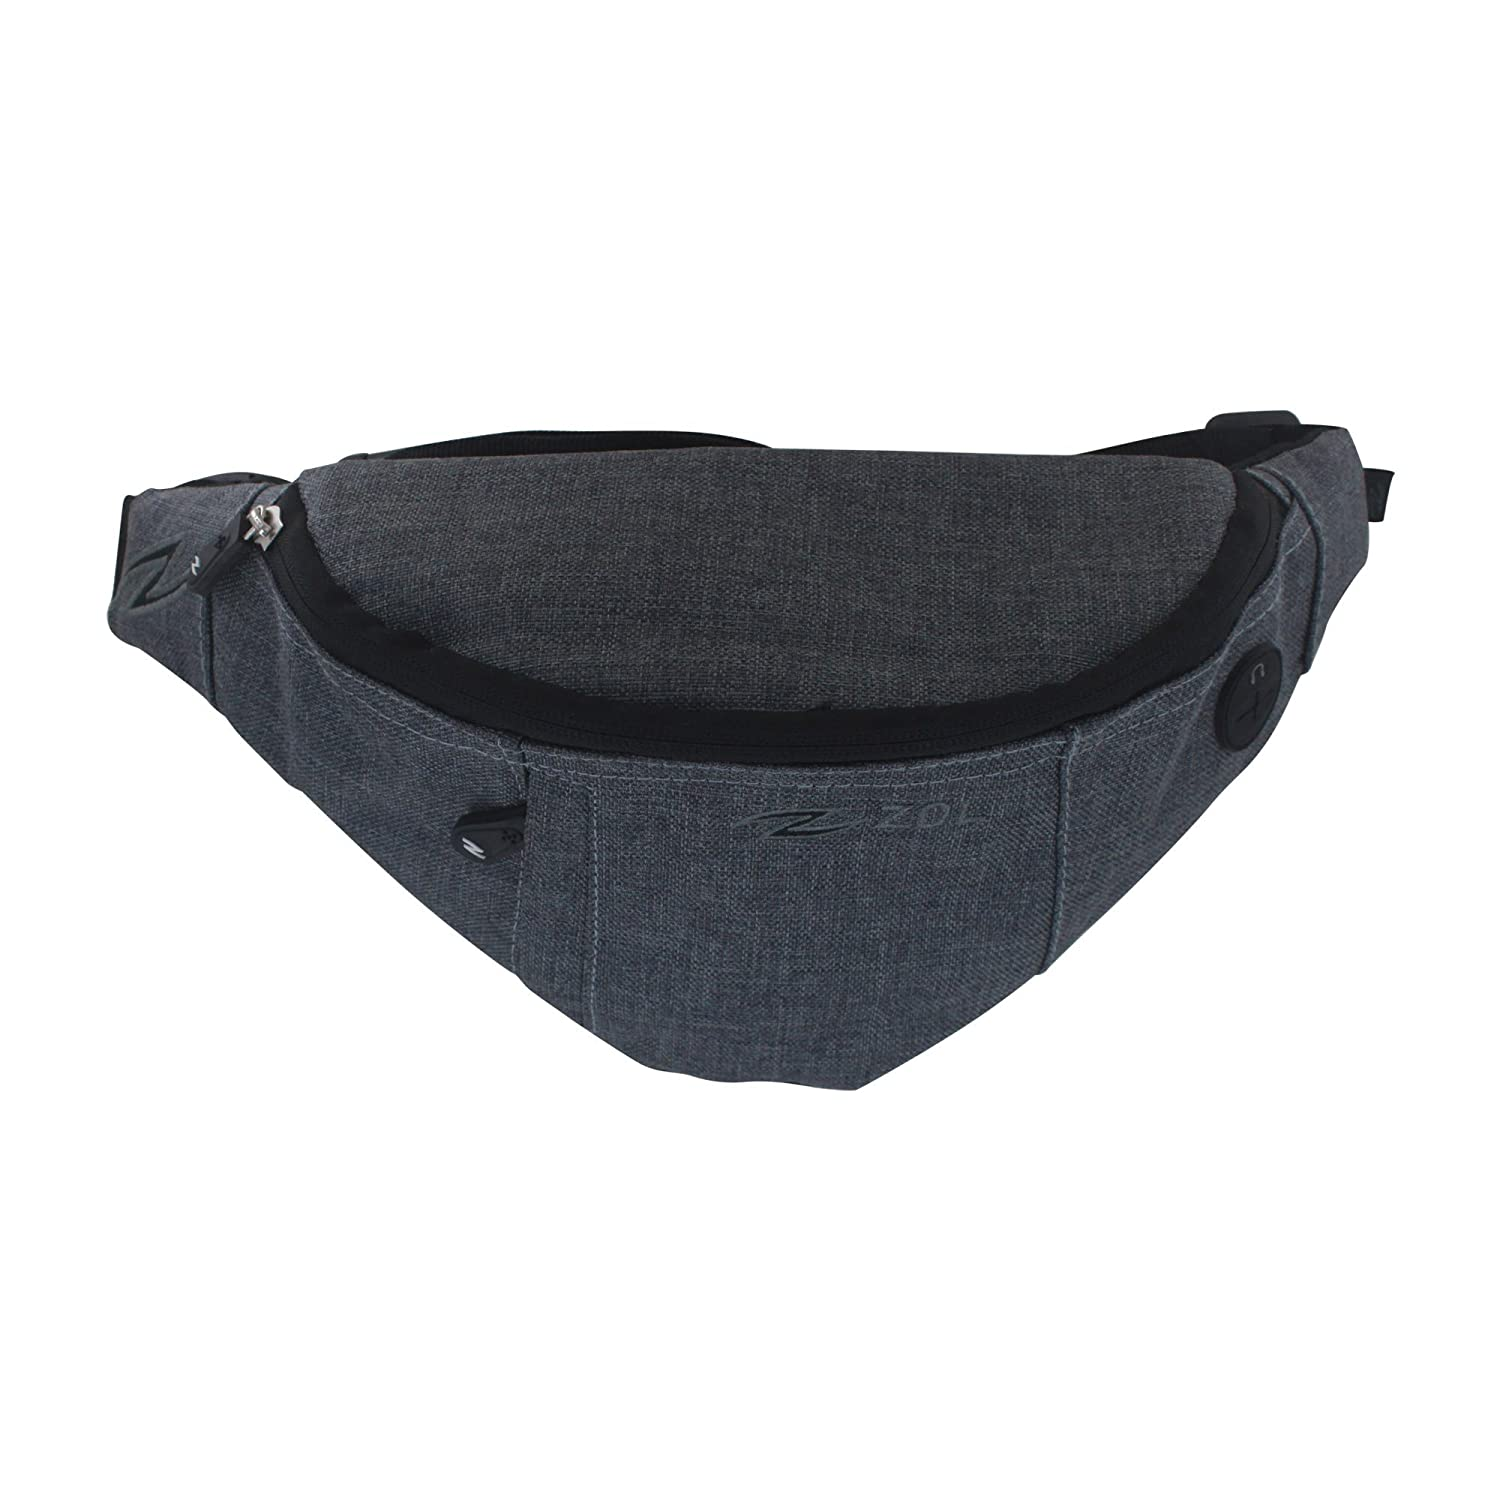 11f42c112b9 Amazon.com   Zol Original Sport and Travel Fashion Fanny Pack Men Women Waist  Bag 3 Pockets   Sports   Outdoors